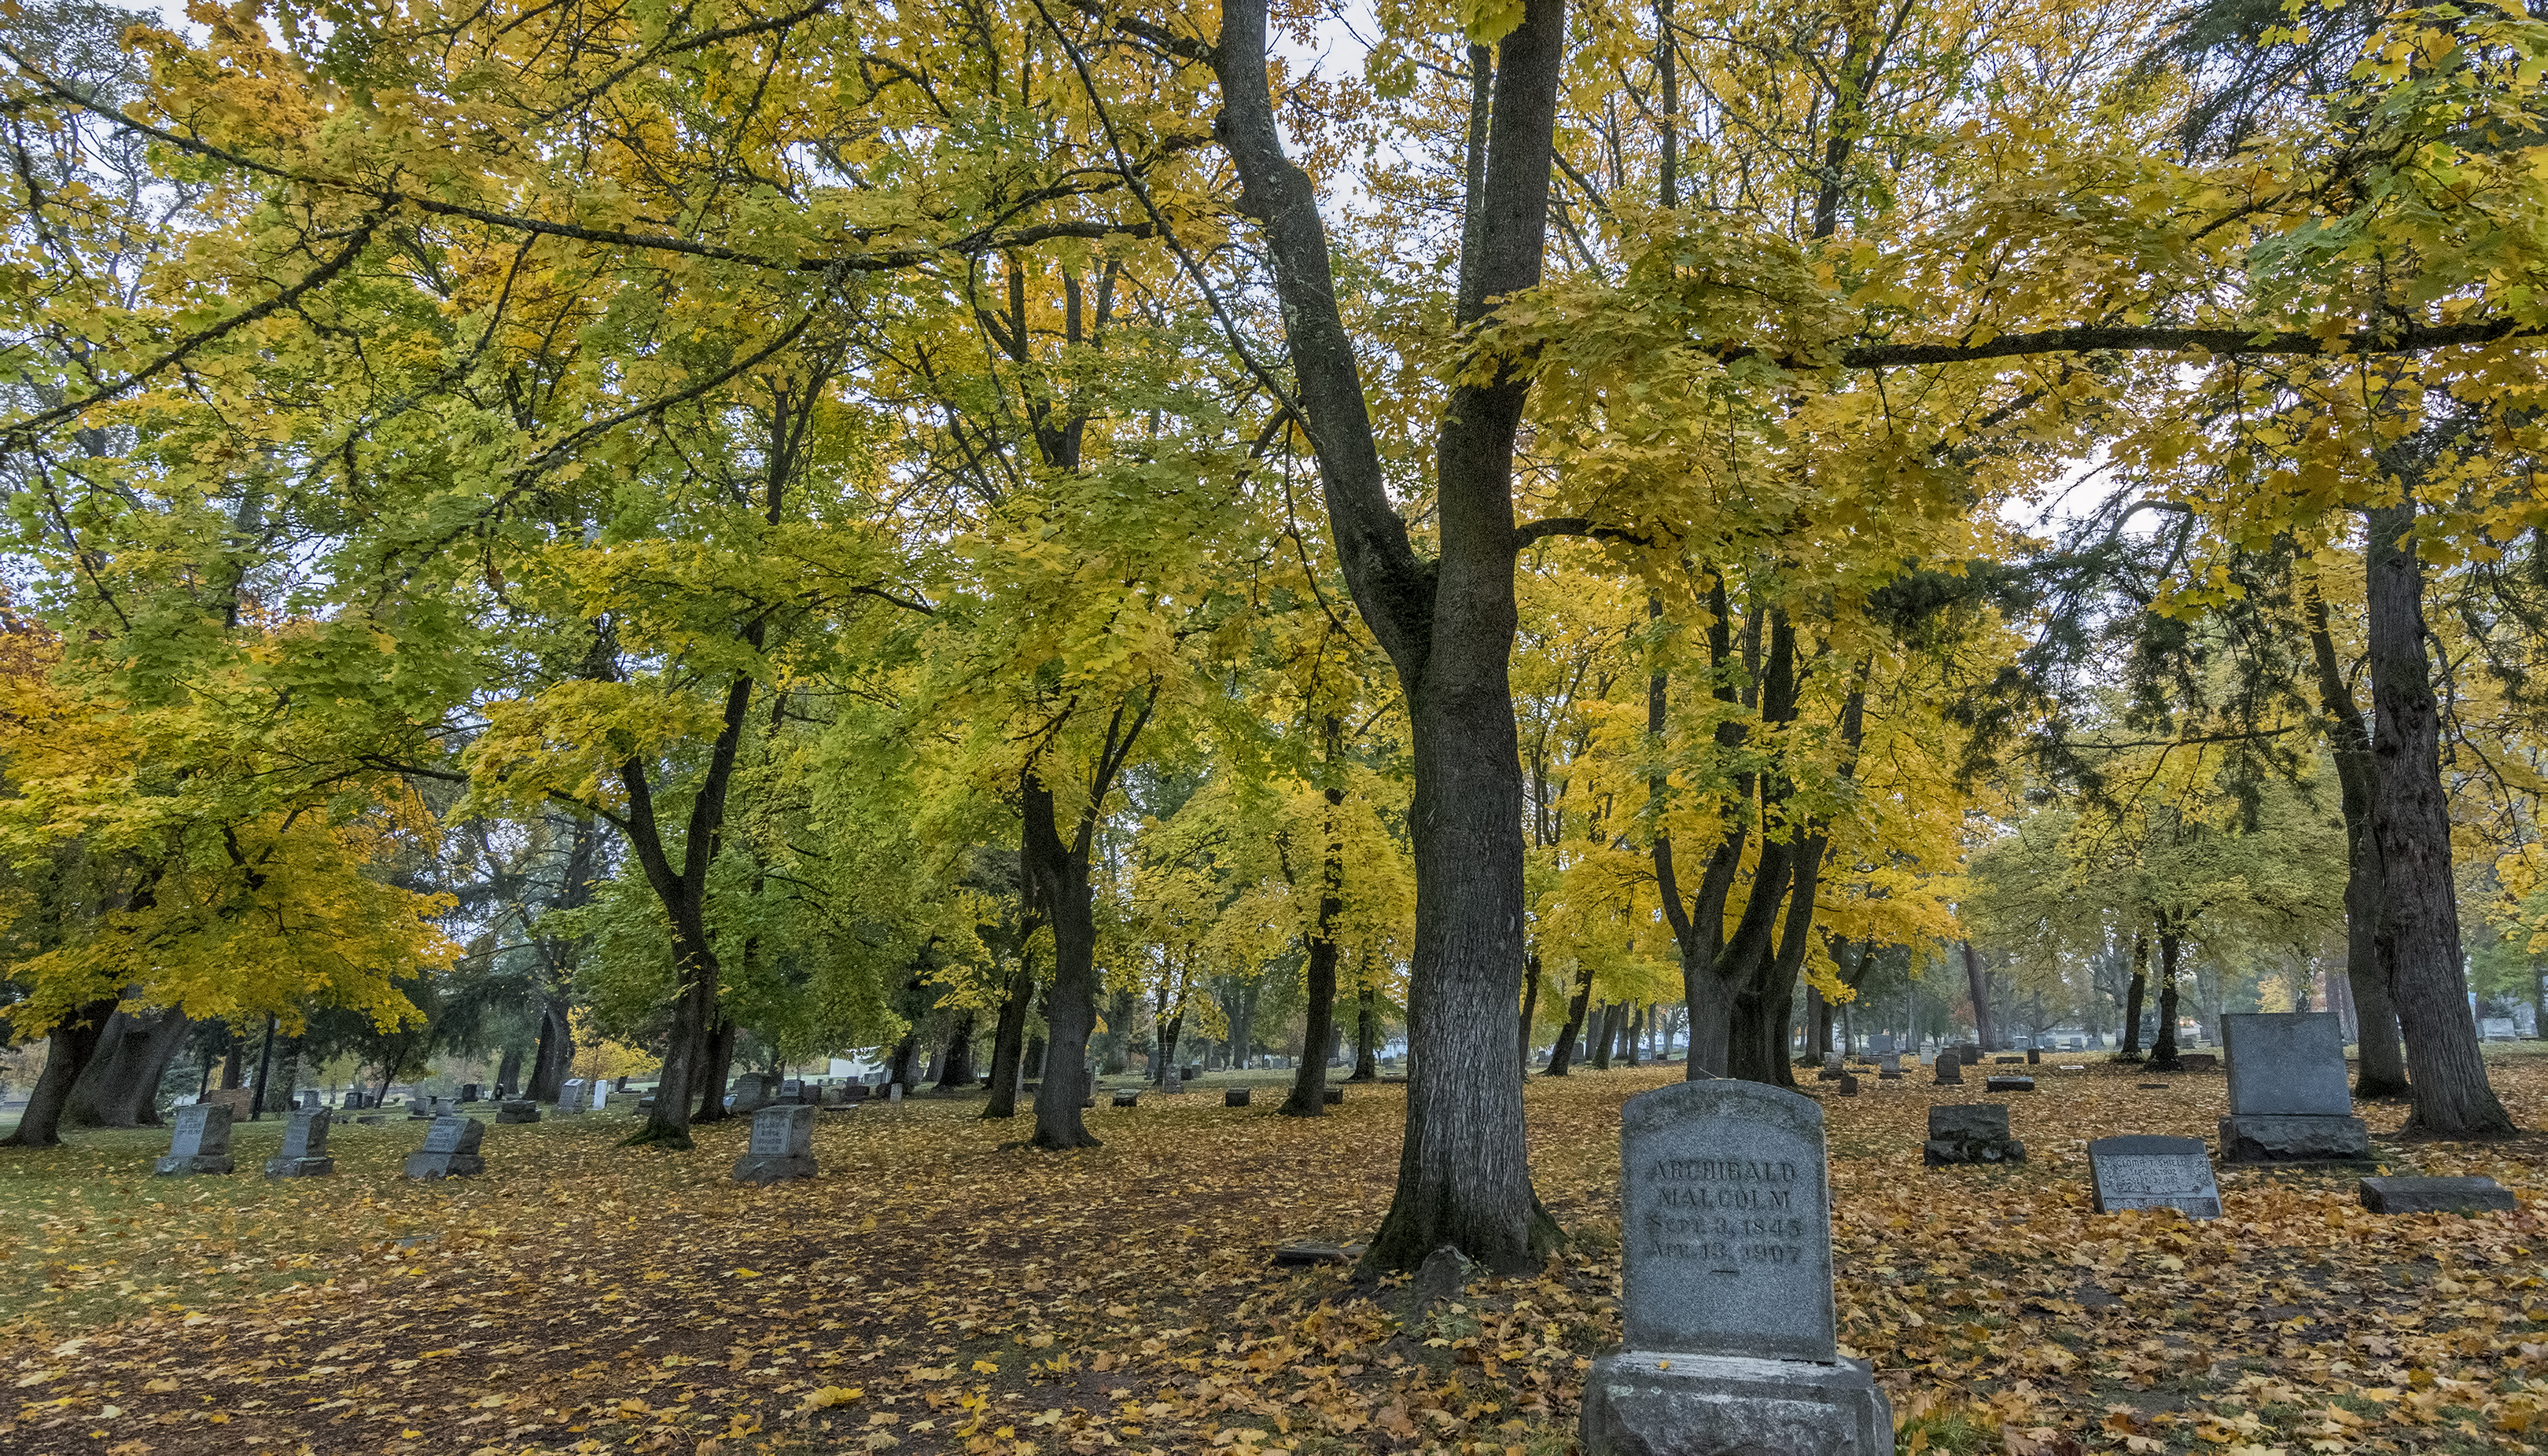 archibald malcolm mountain view cemetery ashland oregon fall autumn